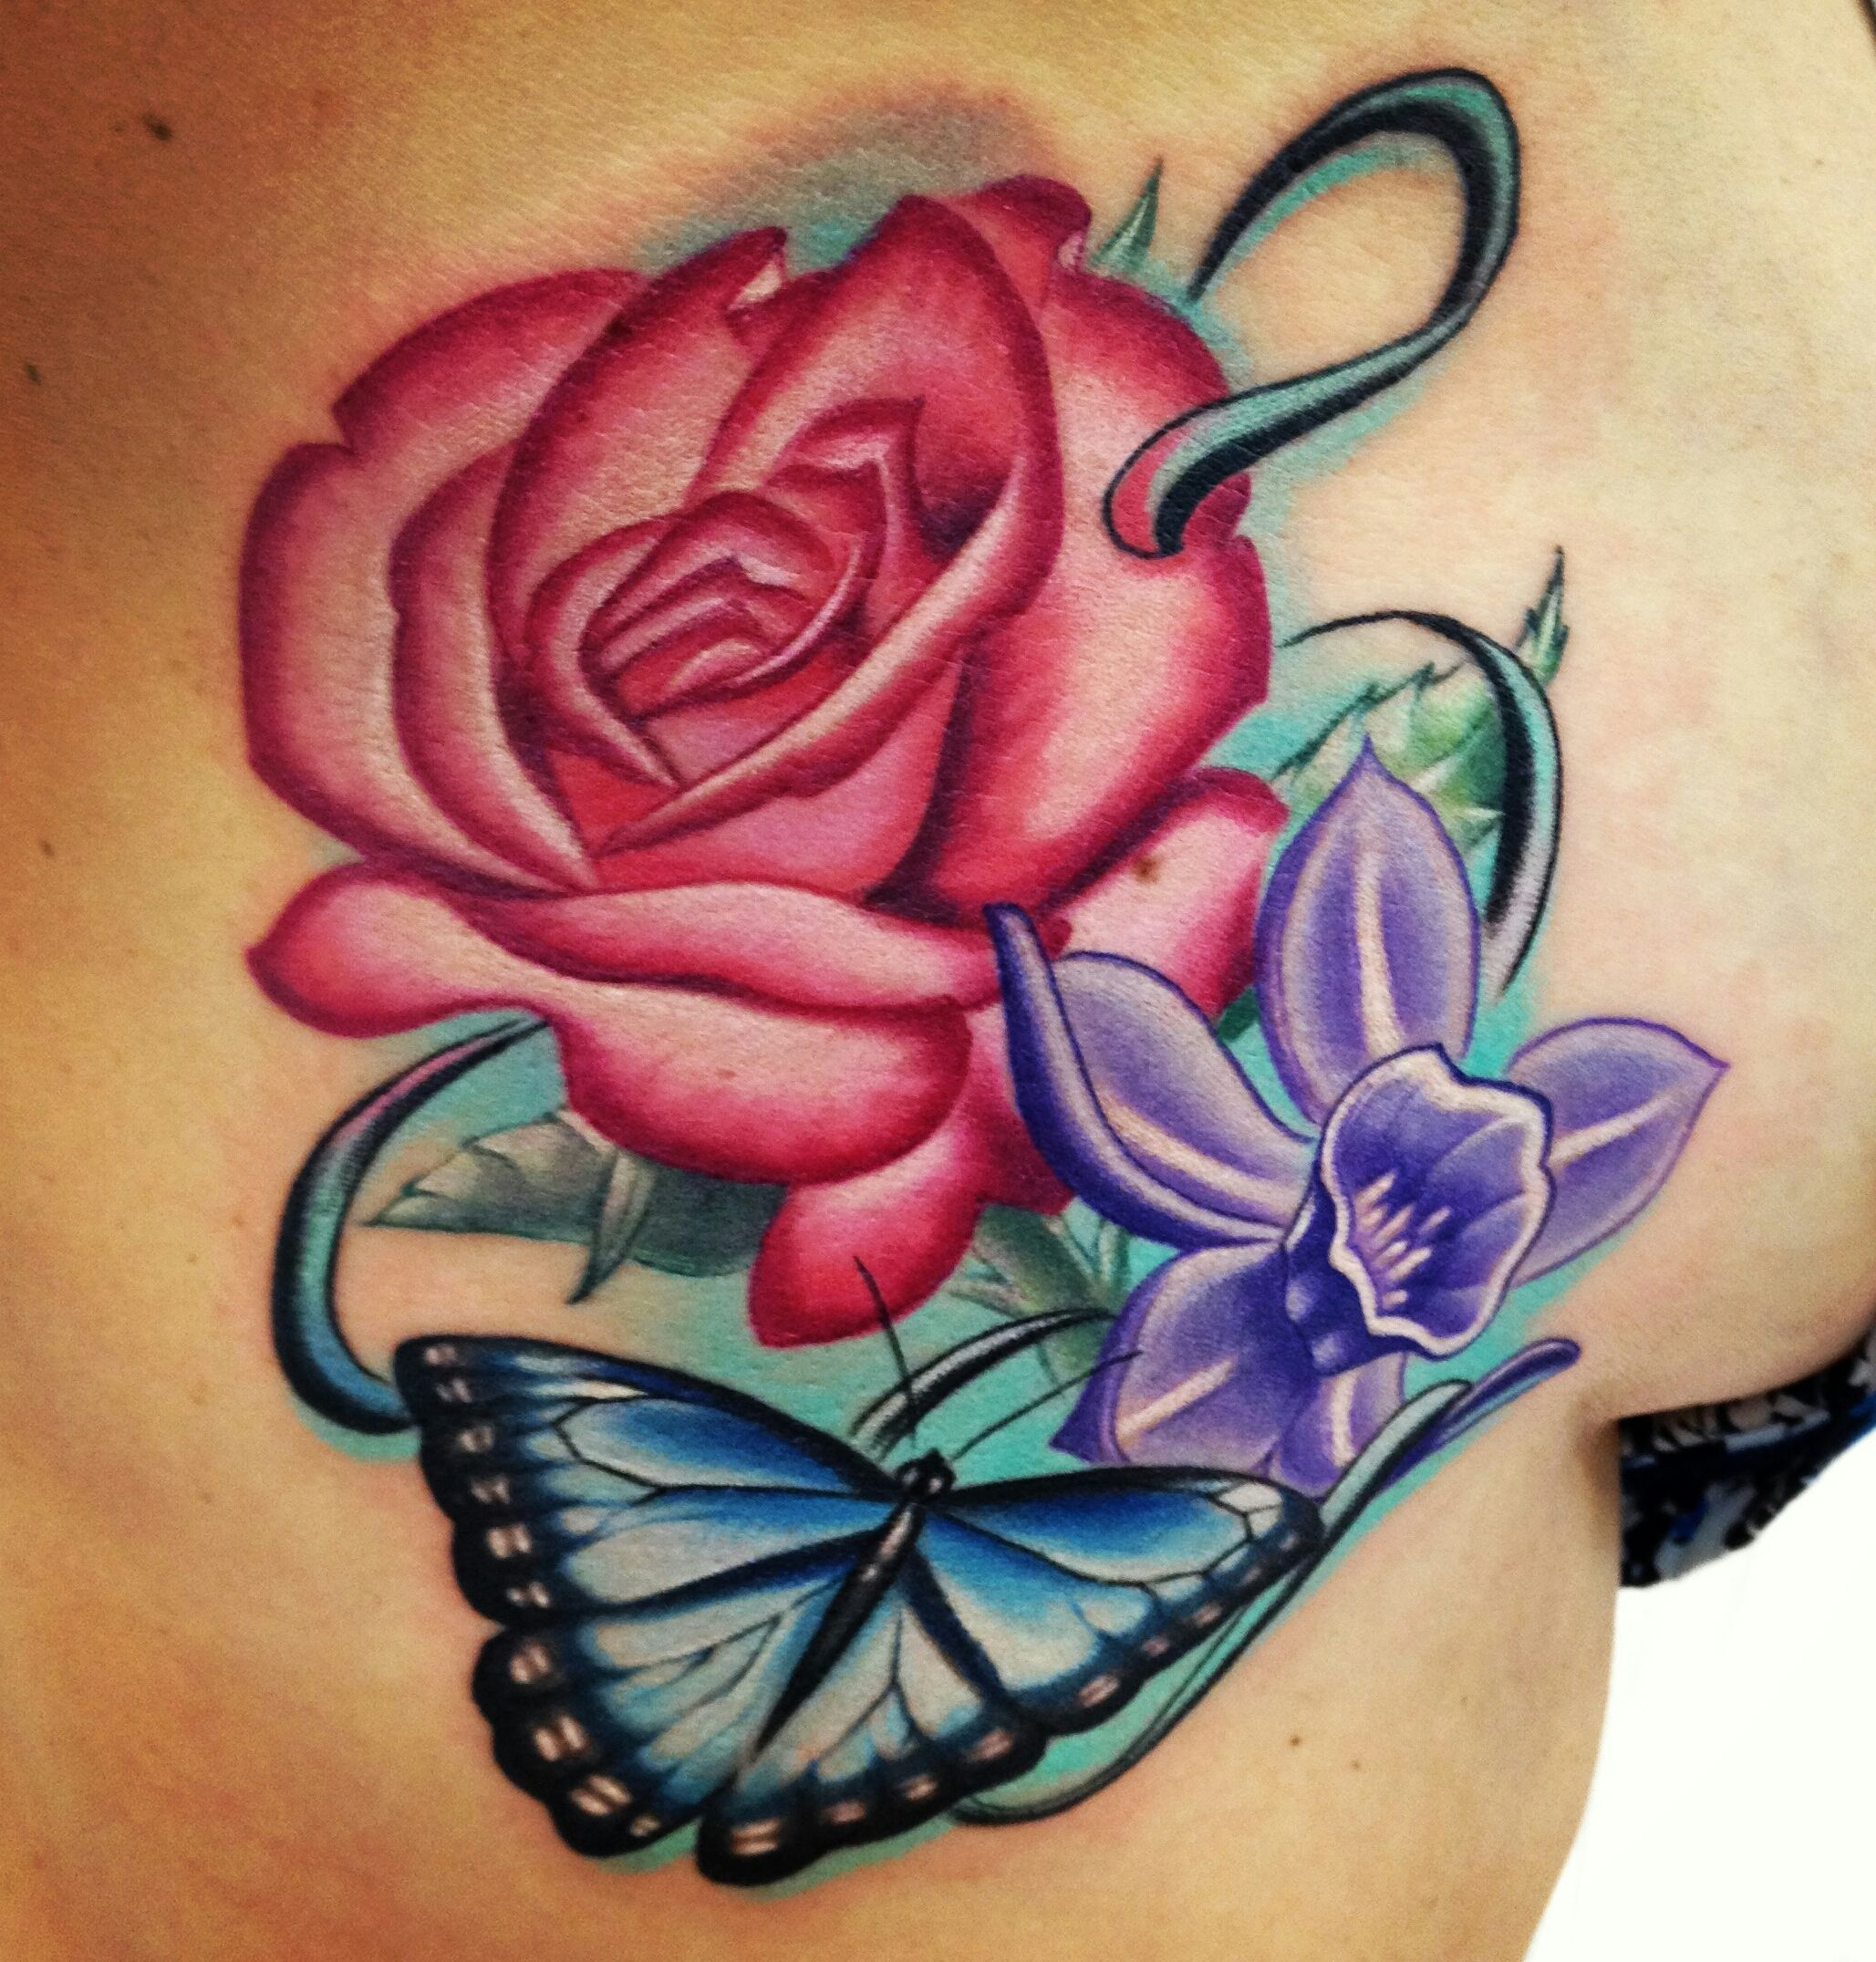 Birth flower tattoo on ribs. The rose for June and daffodil for ...